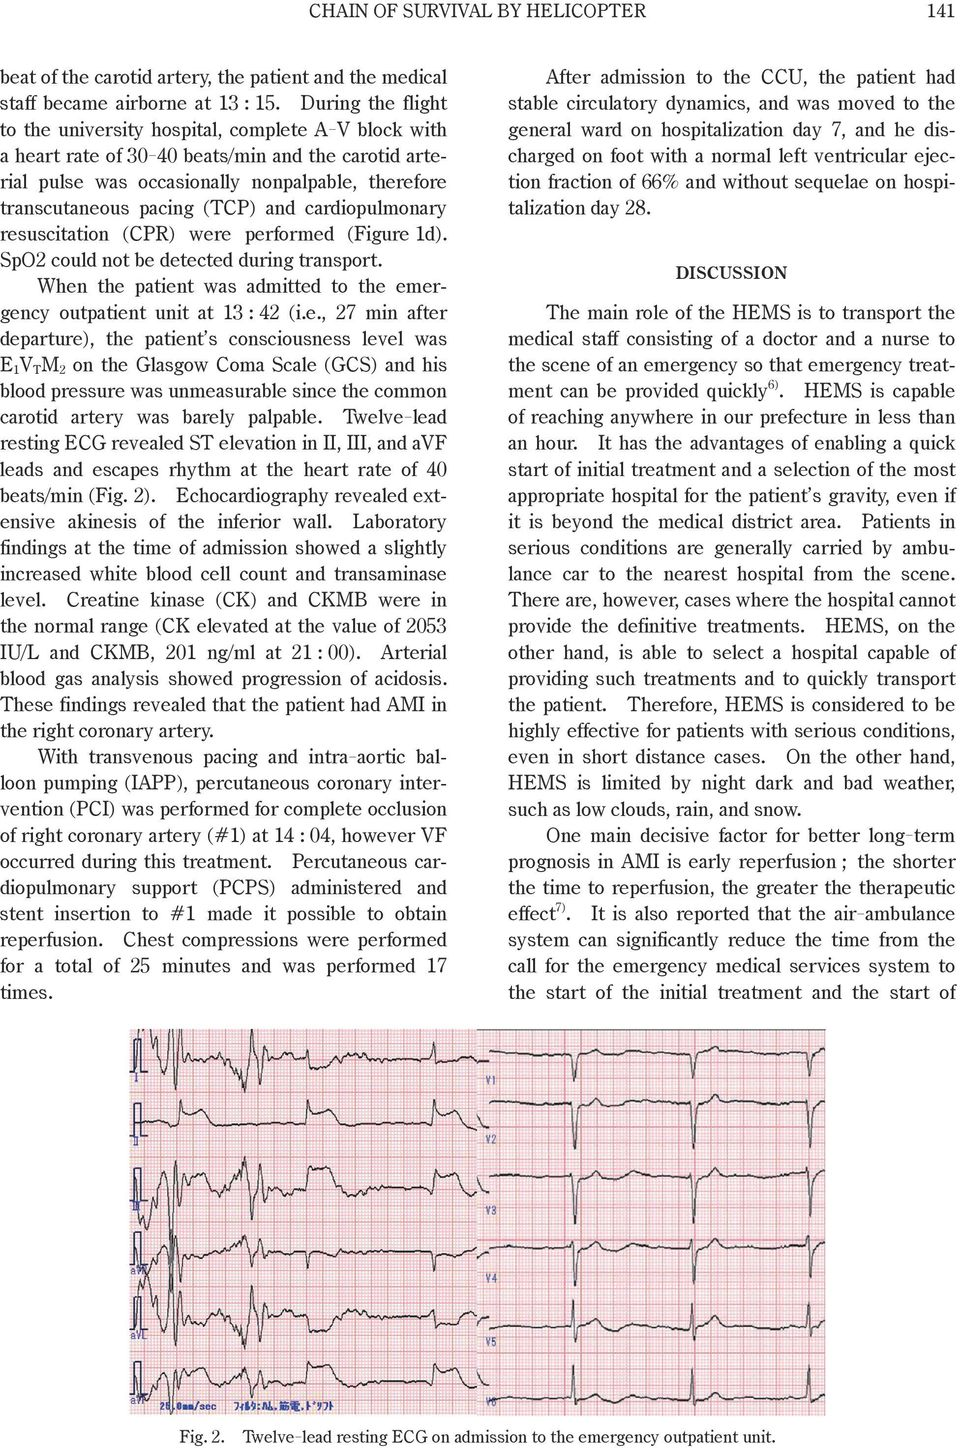 (TCP) and cardiopulmonary res